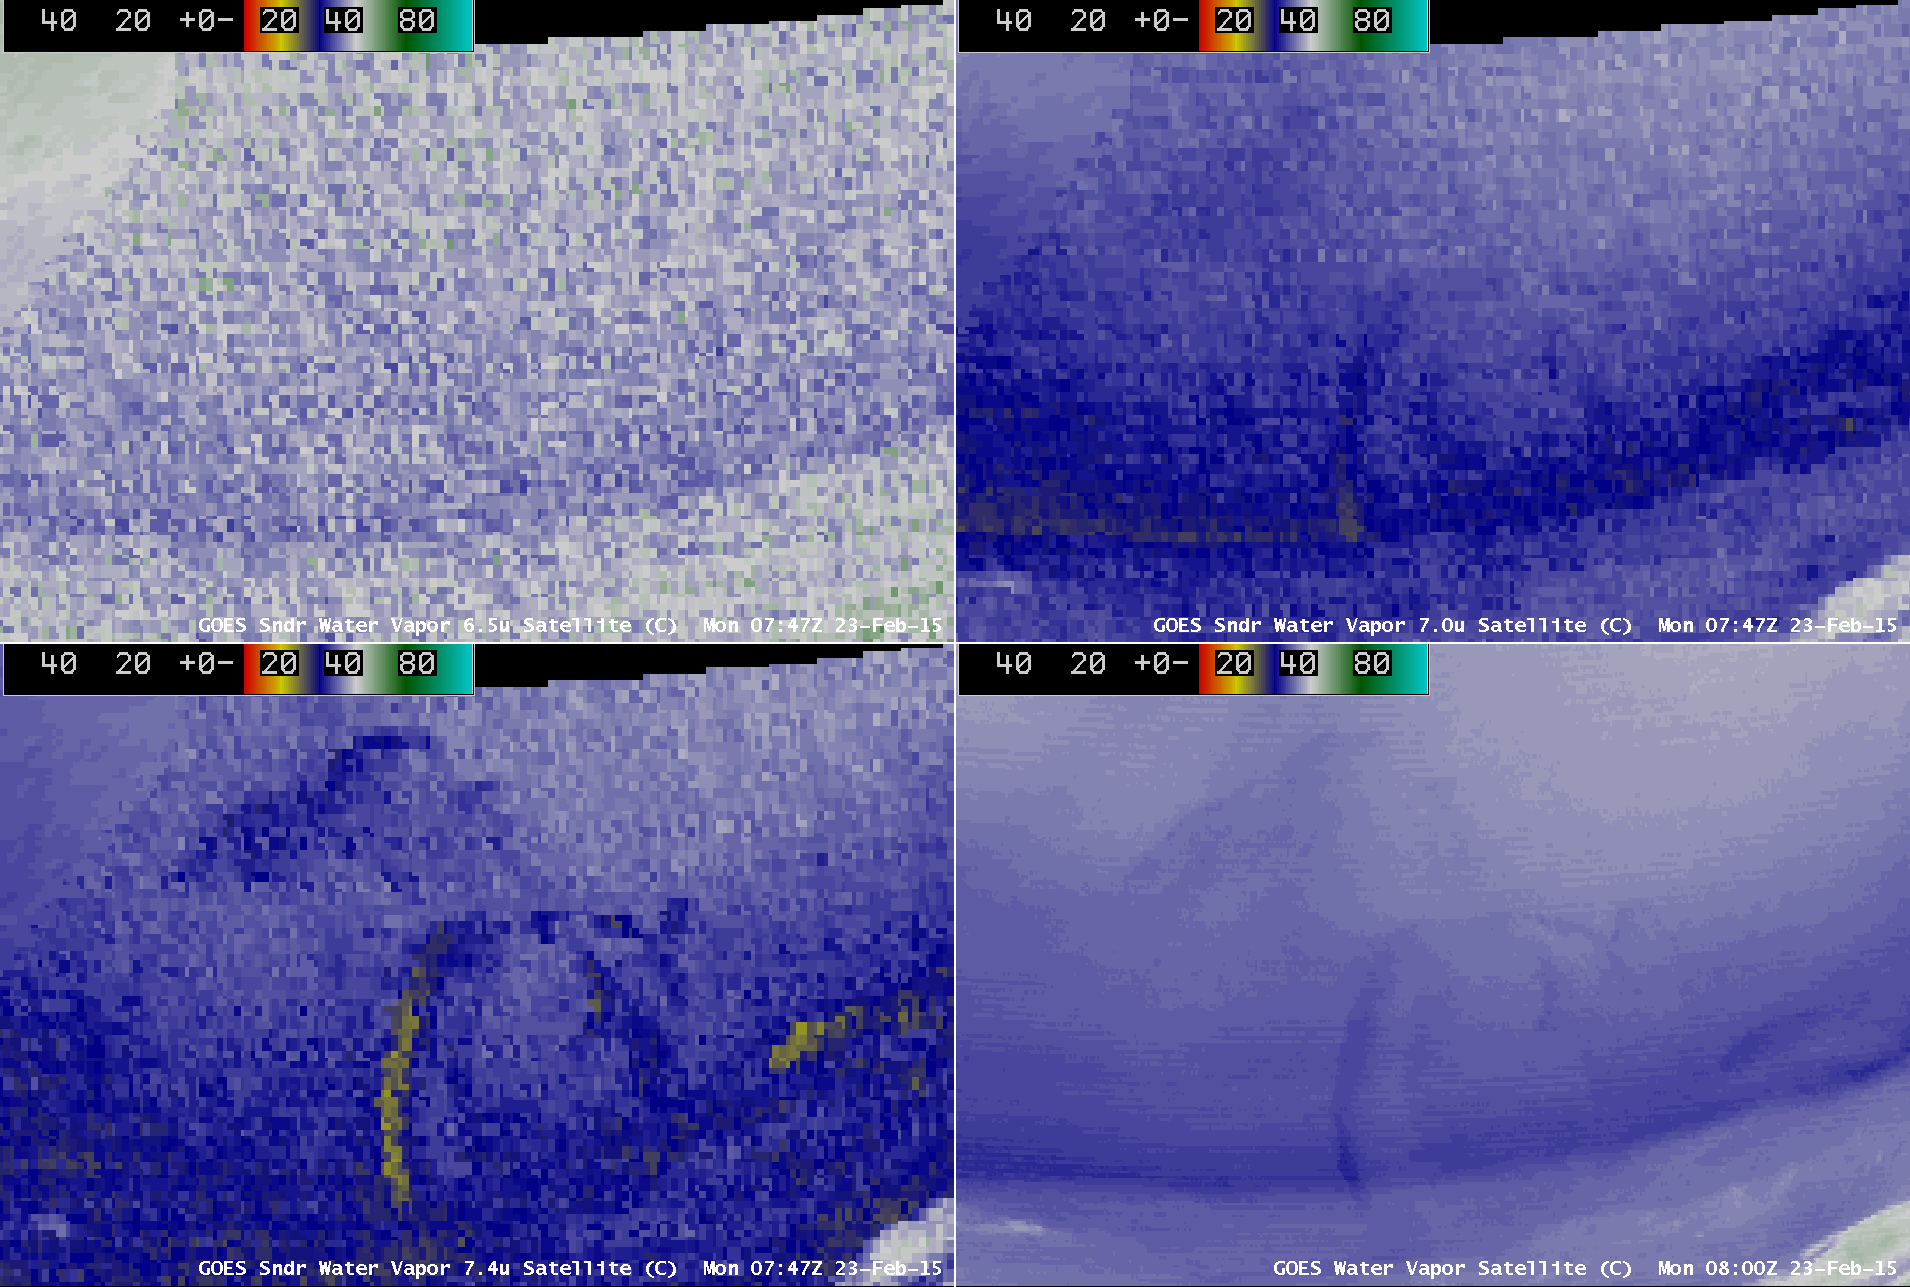 GOES-13 Sounder 6.5 µm, 7.0 µm, 7.4 µm, and Imager 6.5 µm water vapor channel images (click to play animation)